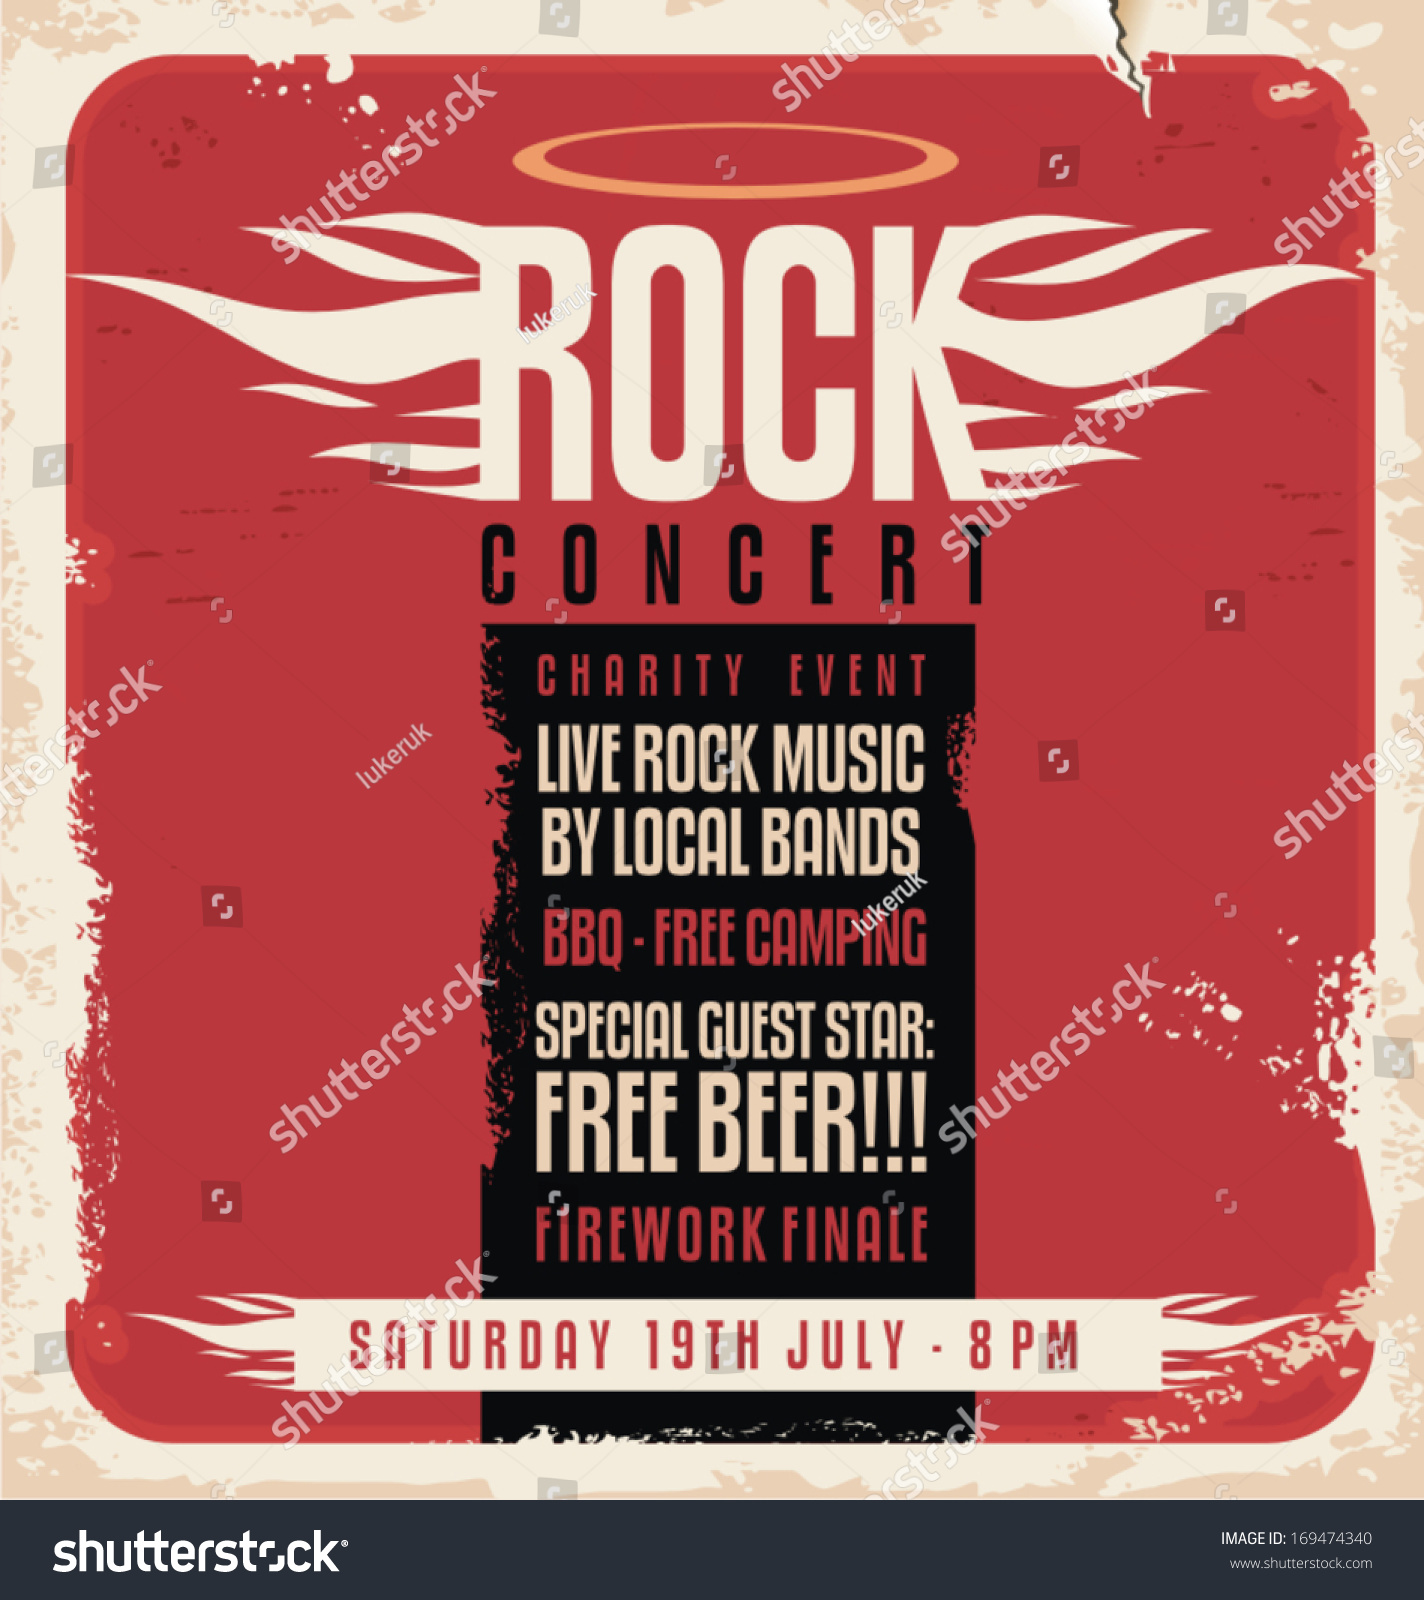 70s poster design template - Rock Concert Retro Poster Design Template On Old Paper Texture